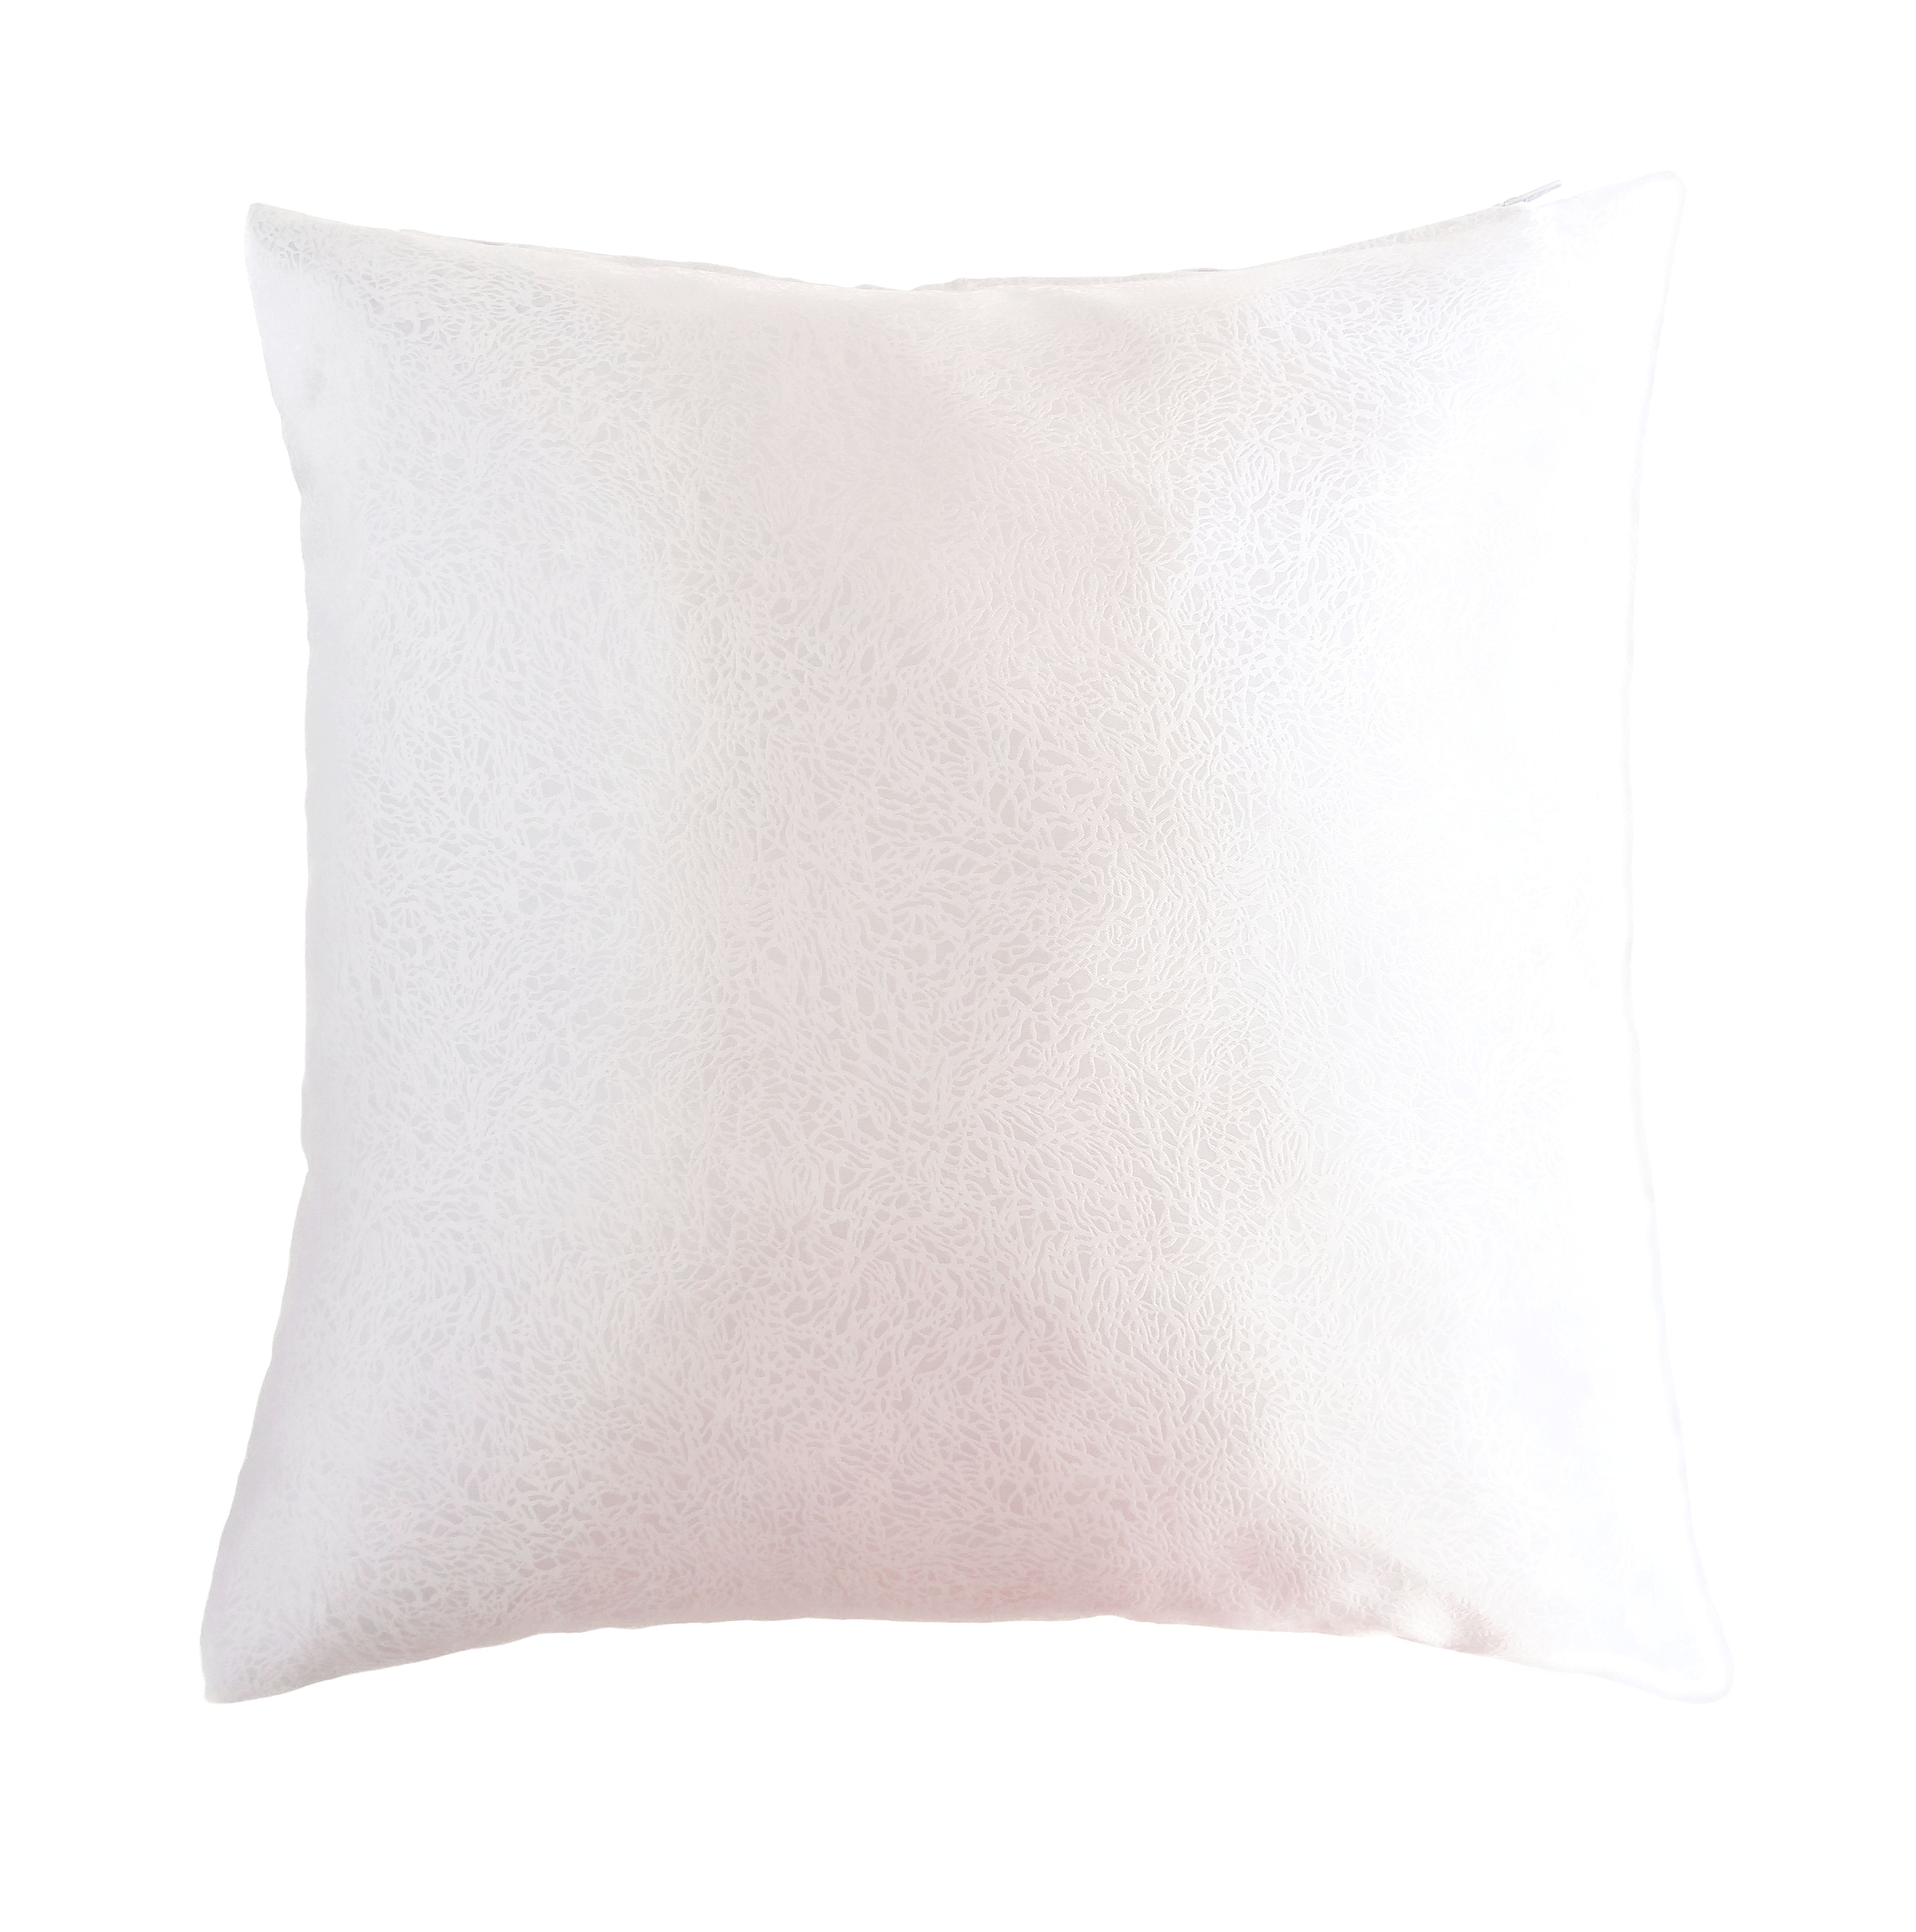 bright white 18 x 18 decorative textured satin cushion cover throw square pillowcase for chair pillow covers color 1 pillows decor sofa couch bed